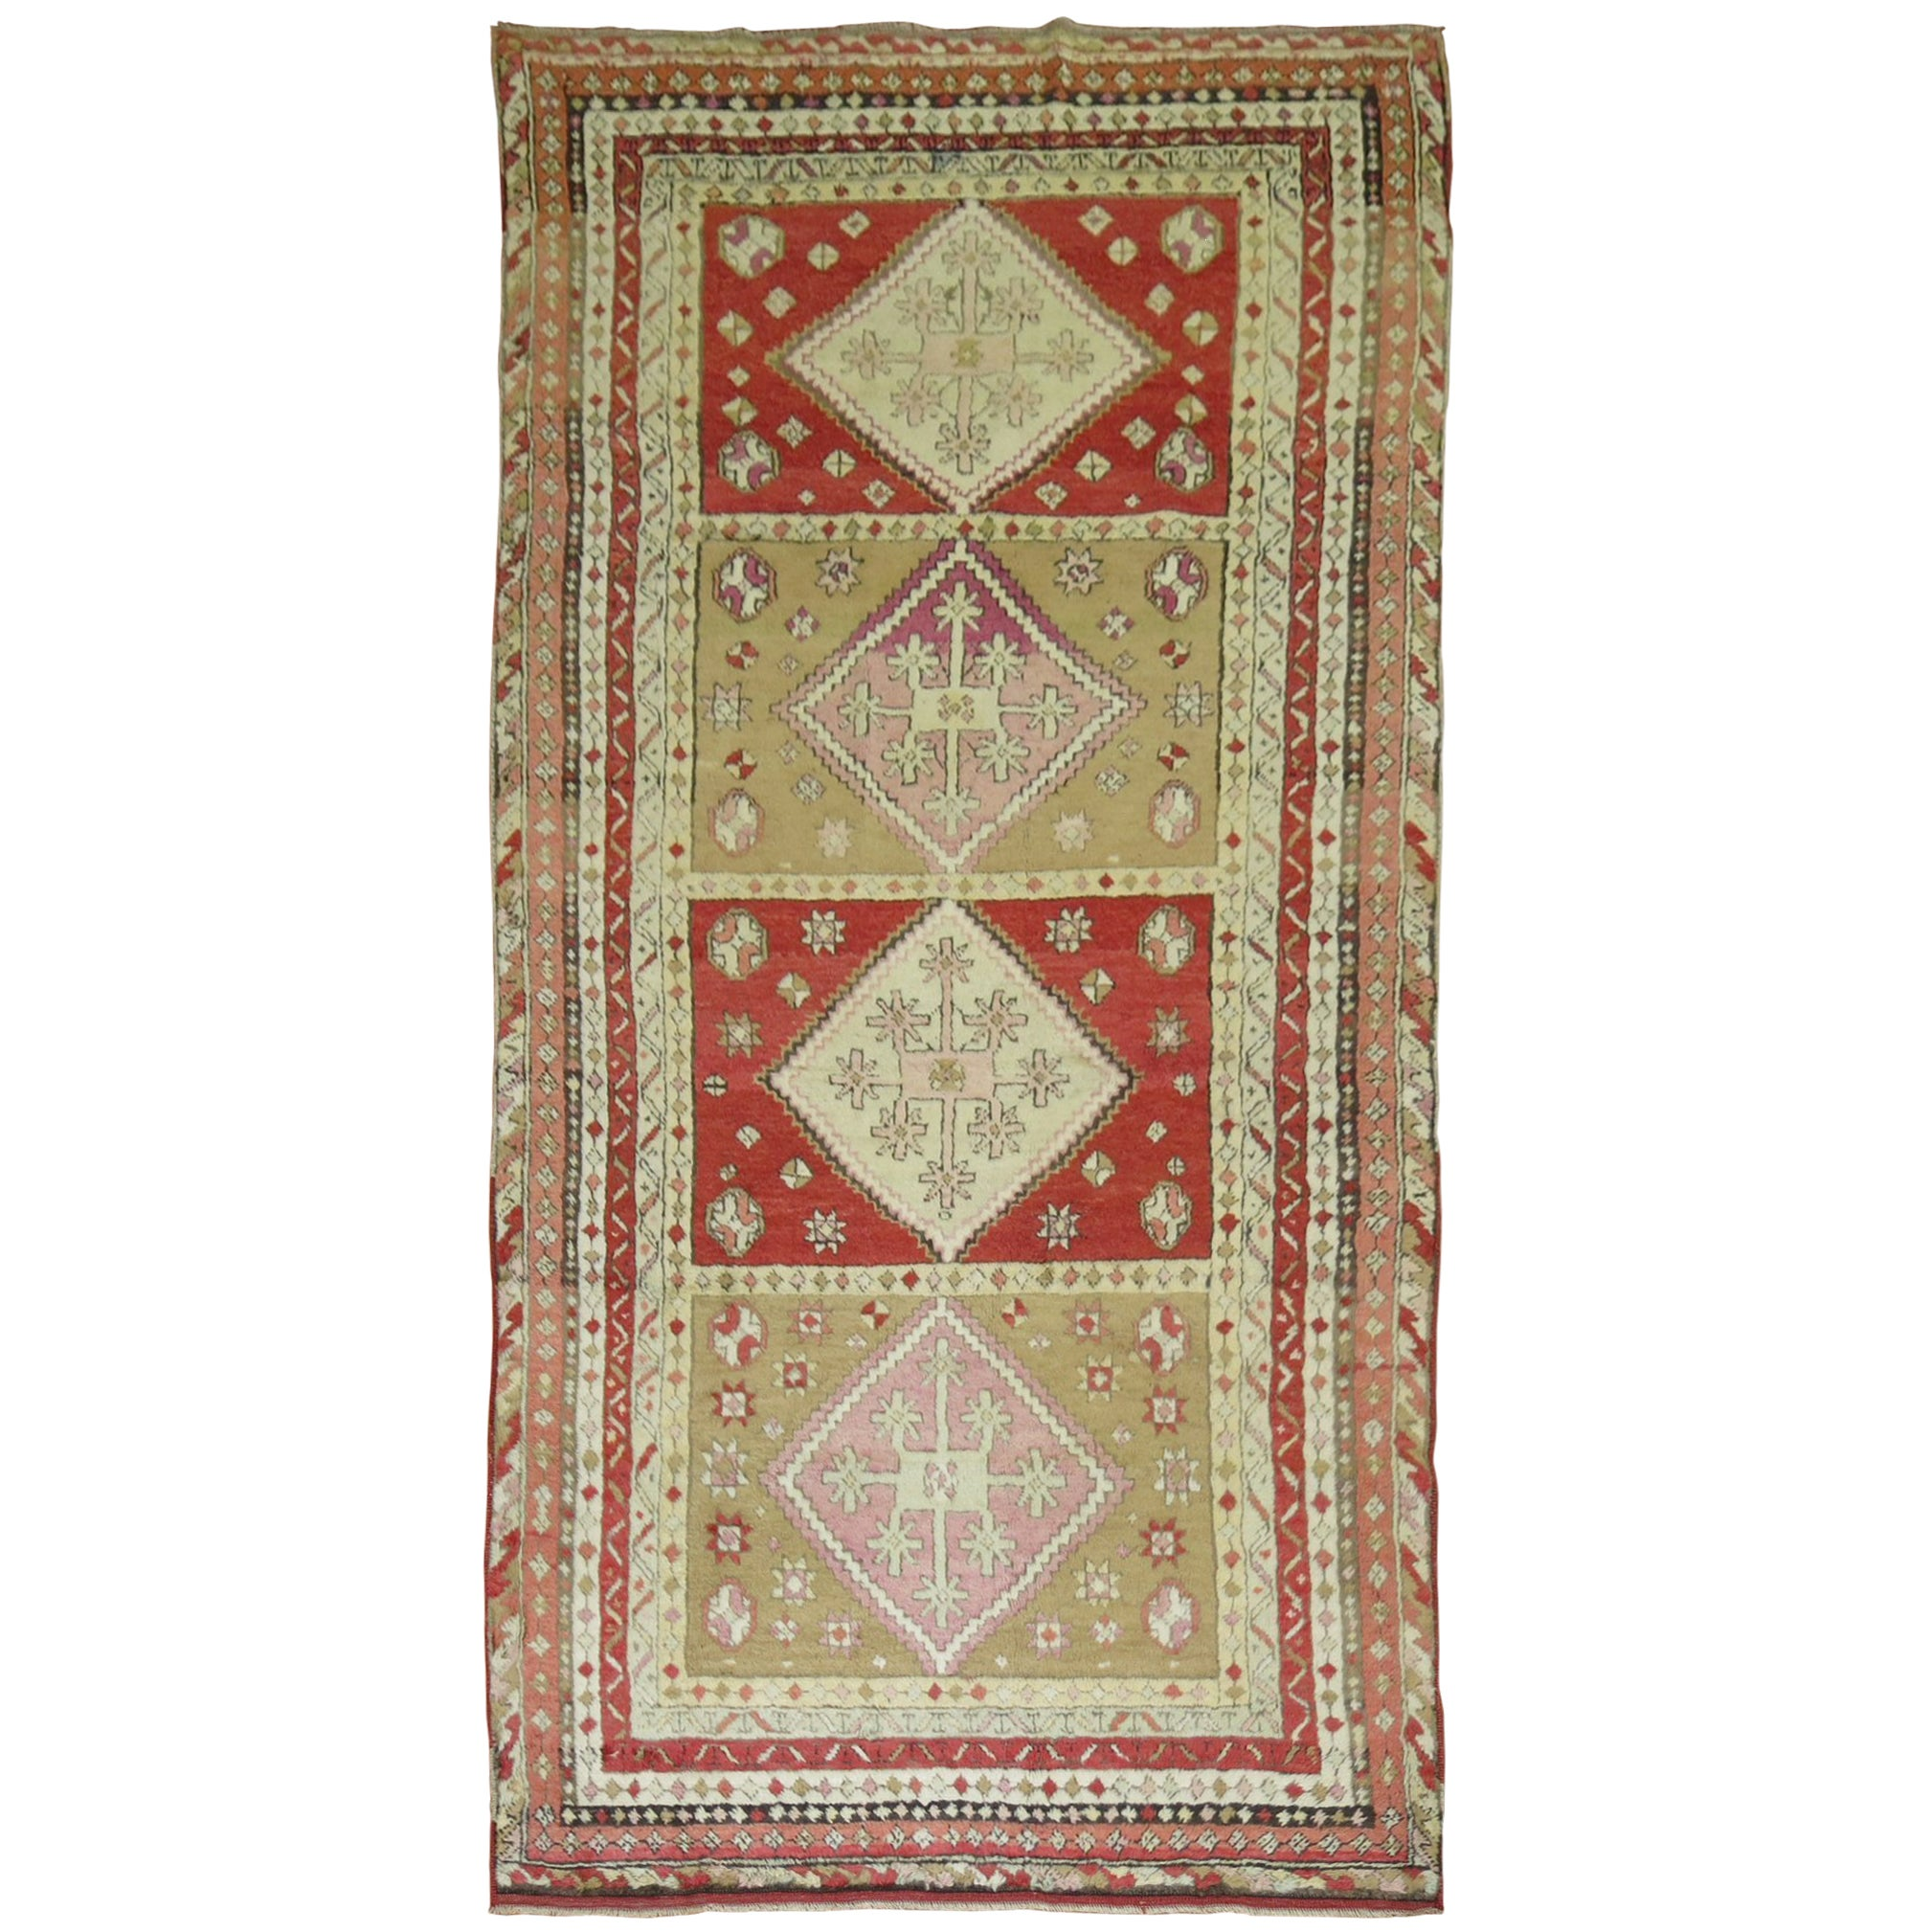 Intricate Antique Turkish Sivas Rug